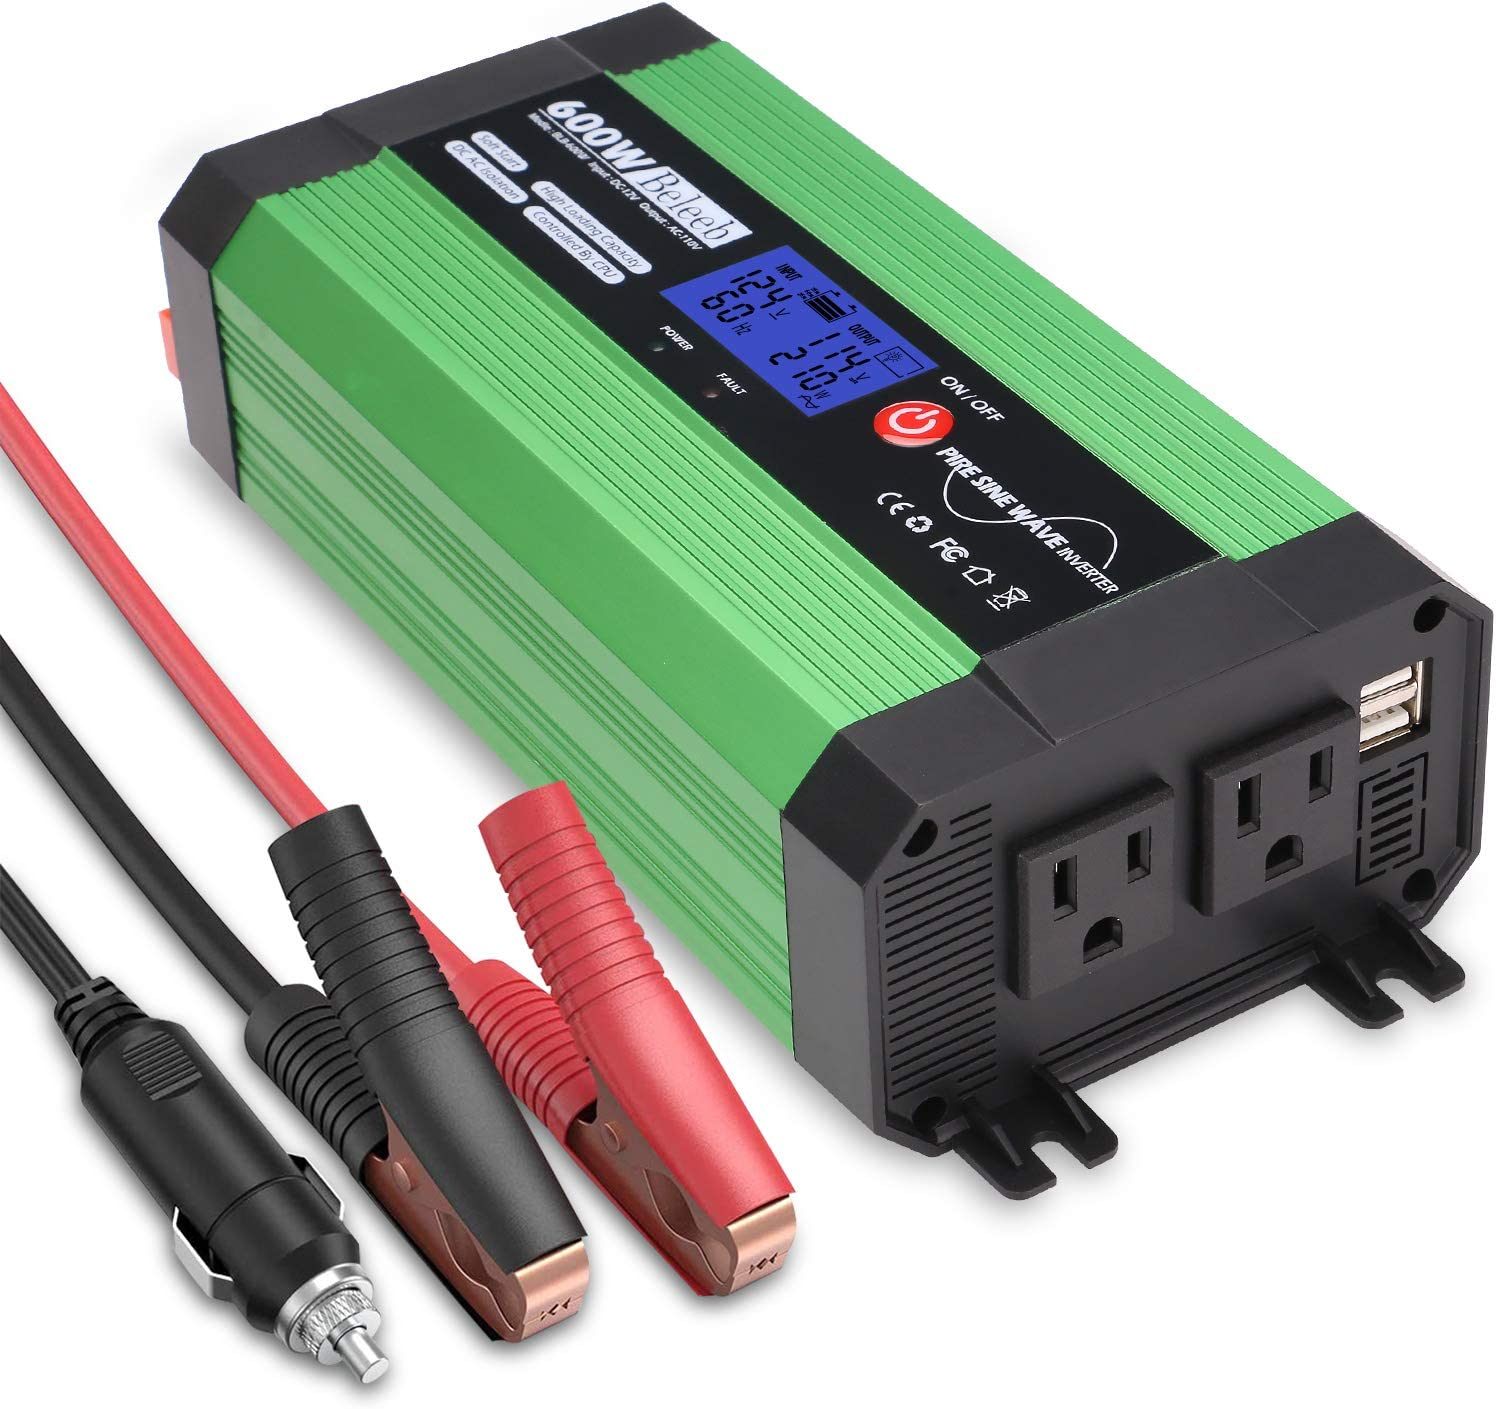 Beleeb 600W Pure Sine Wave Inverter, DC 12V to AC 110V Power Inverter with LCD Display, Dual USB Ports and 2 AC Outlets: Car Electronics